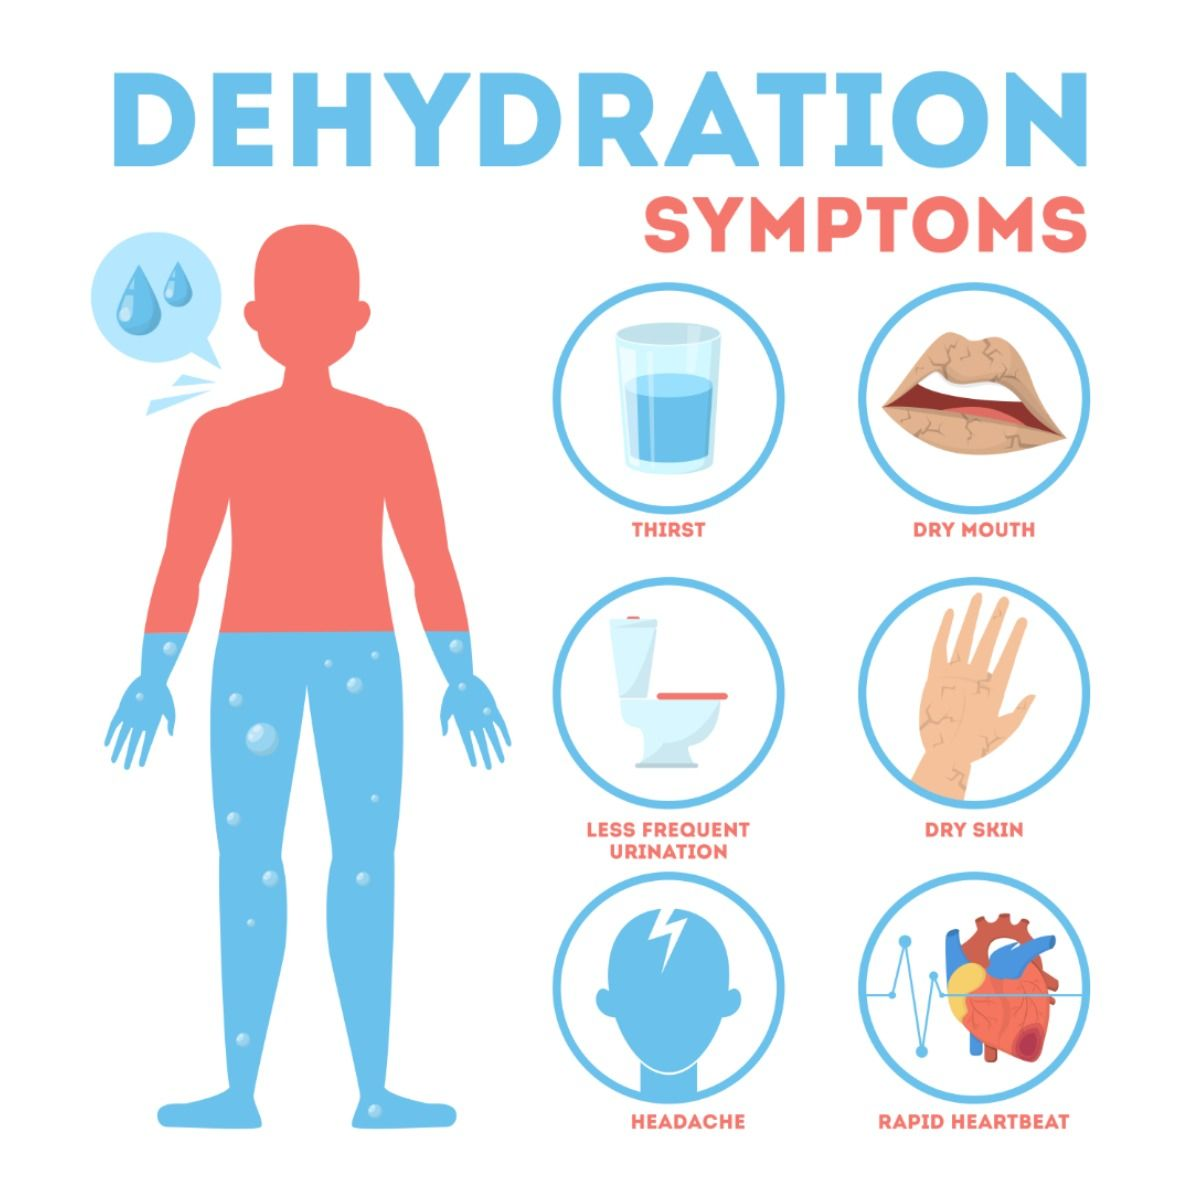 Dehydration and itchy skin